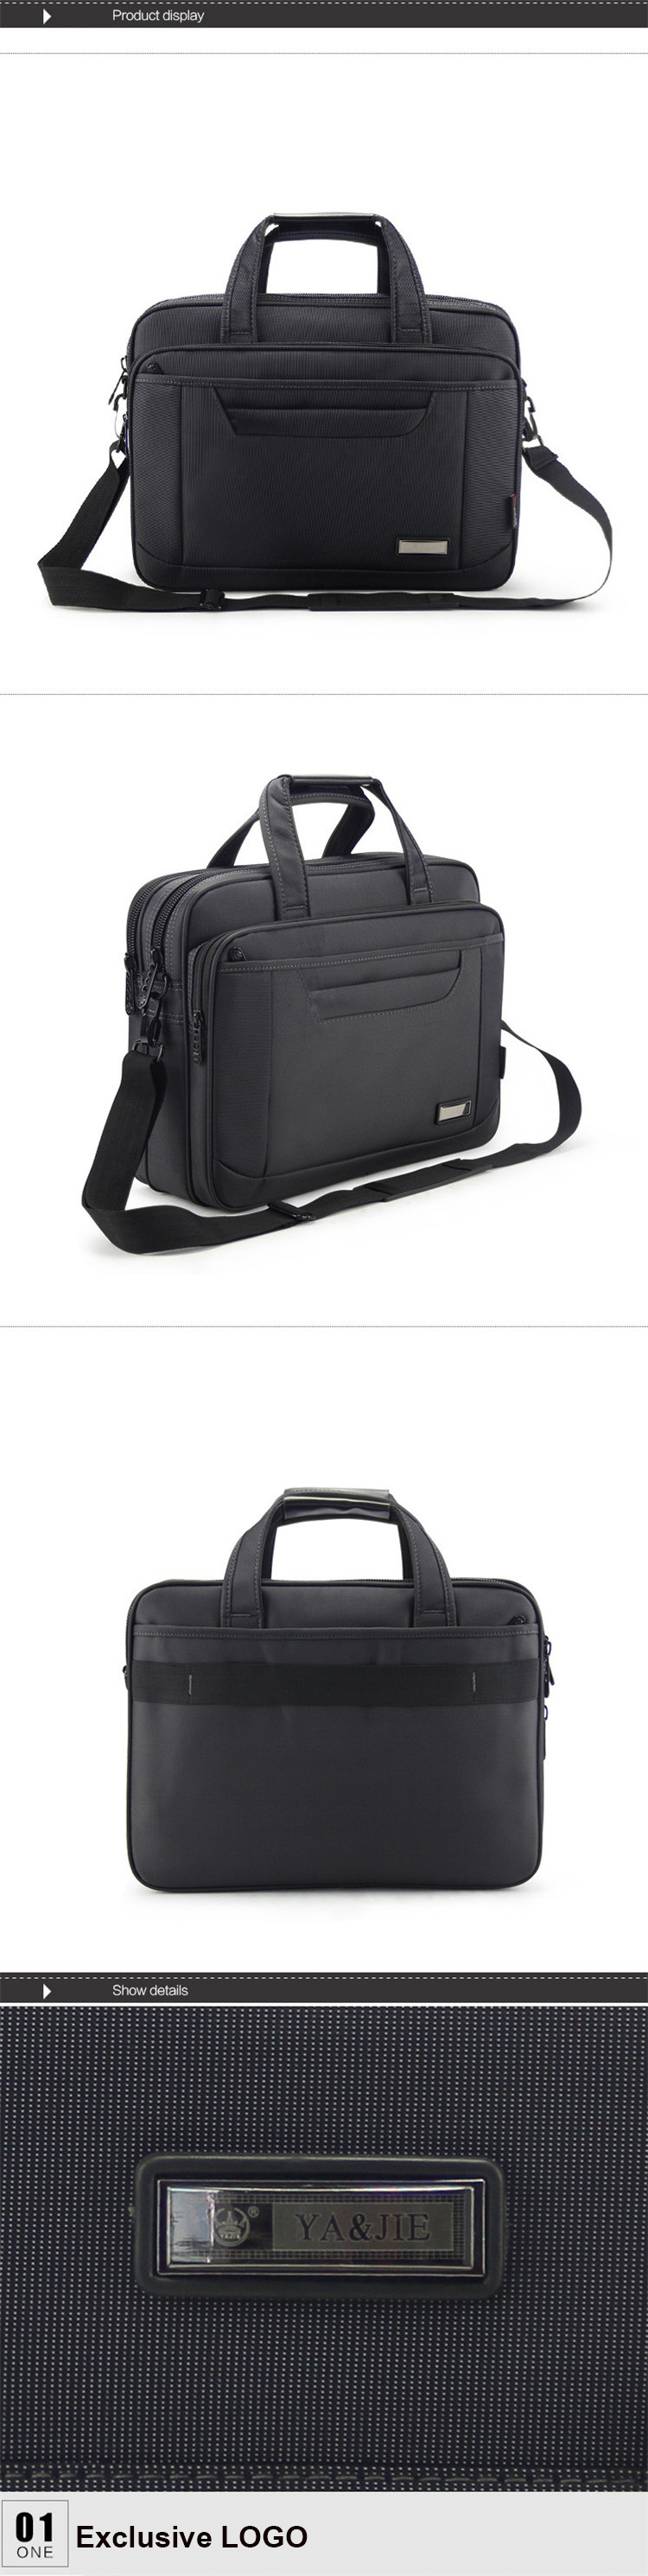 H8e9ce33204d4484e957b854ea4dc9930Q - OYIXINGER Briefcase Lawyer Men Computer Hand Bags Luxury Brand Mens Business Bag Oxford Waterproof Office Work For Maletas